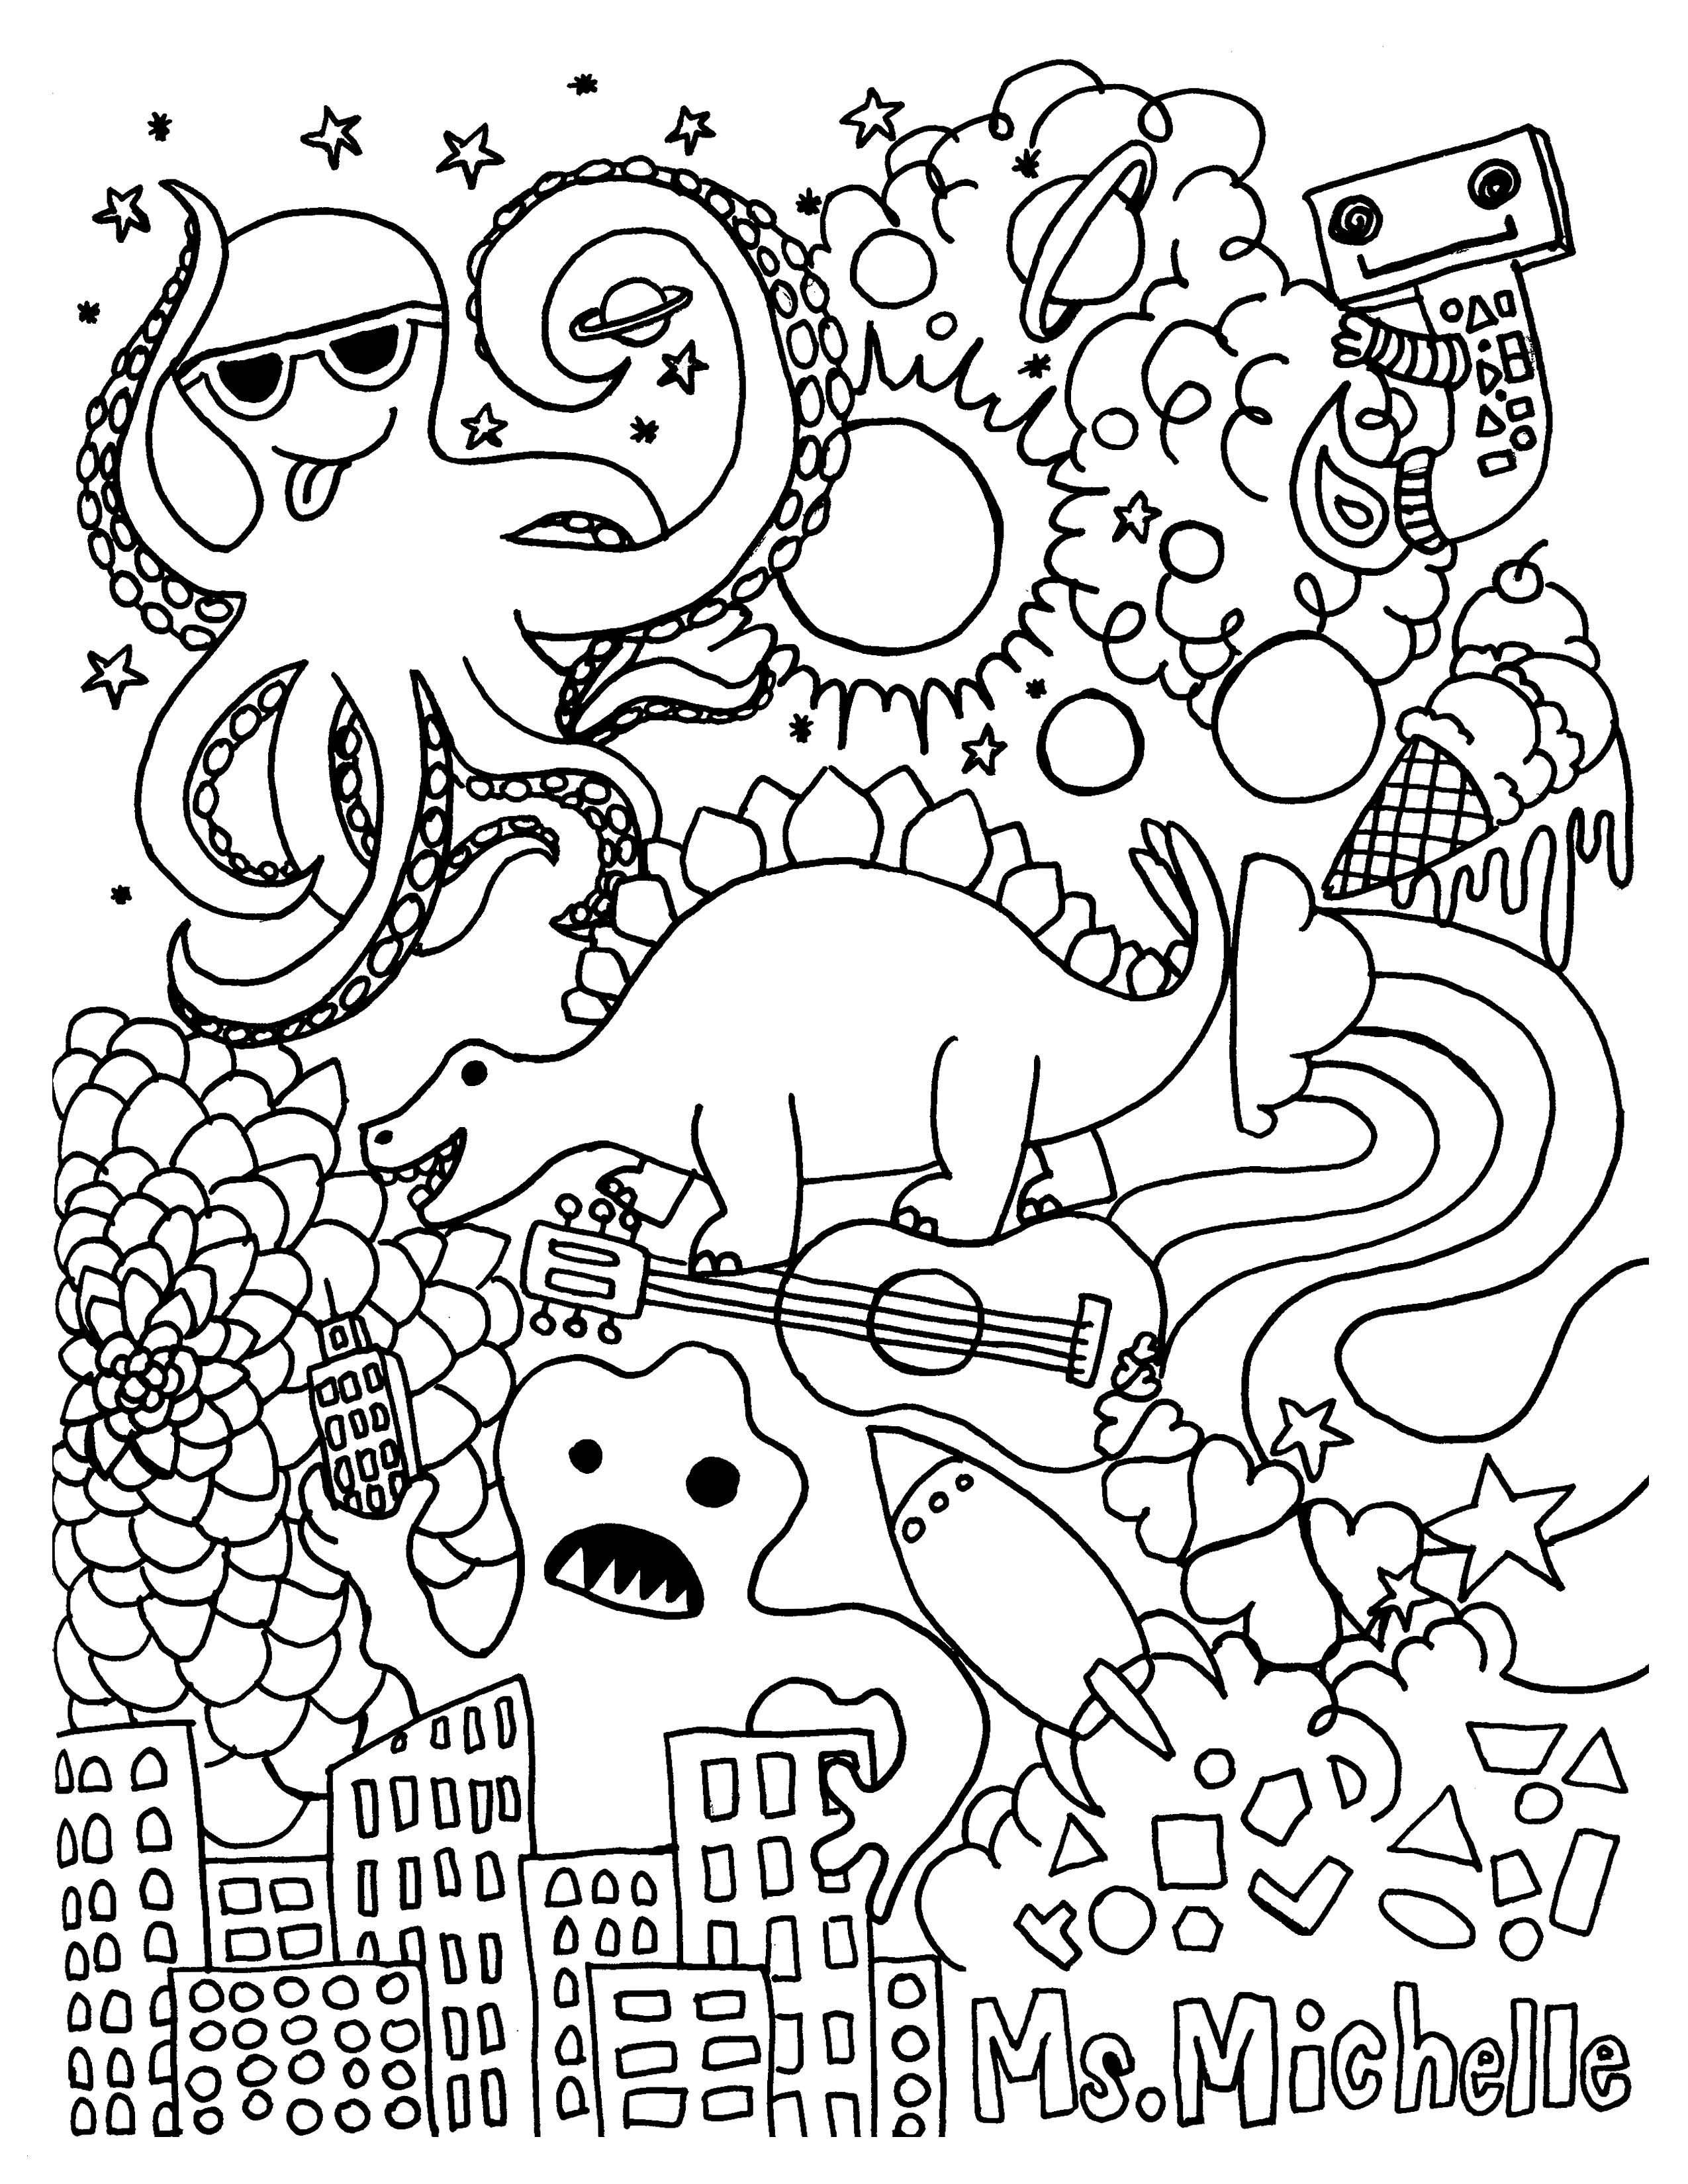 Christmas Intricate Coloring Pages With Free Printable Difficult Amazing